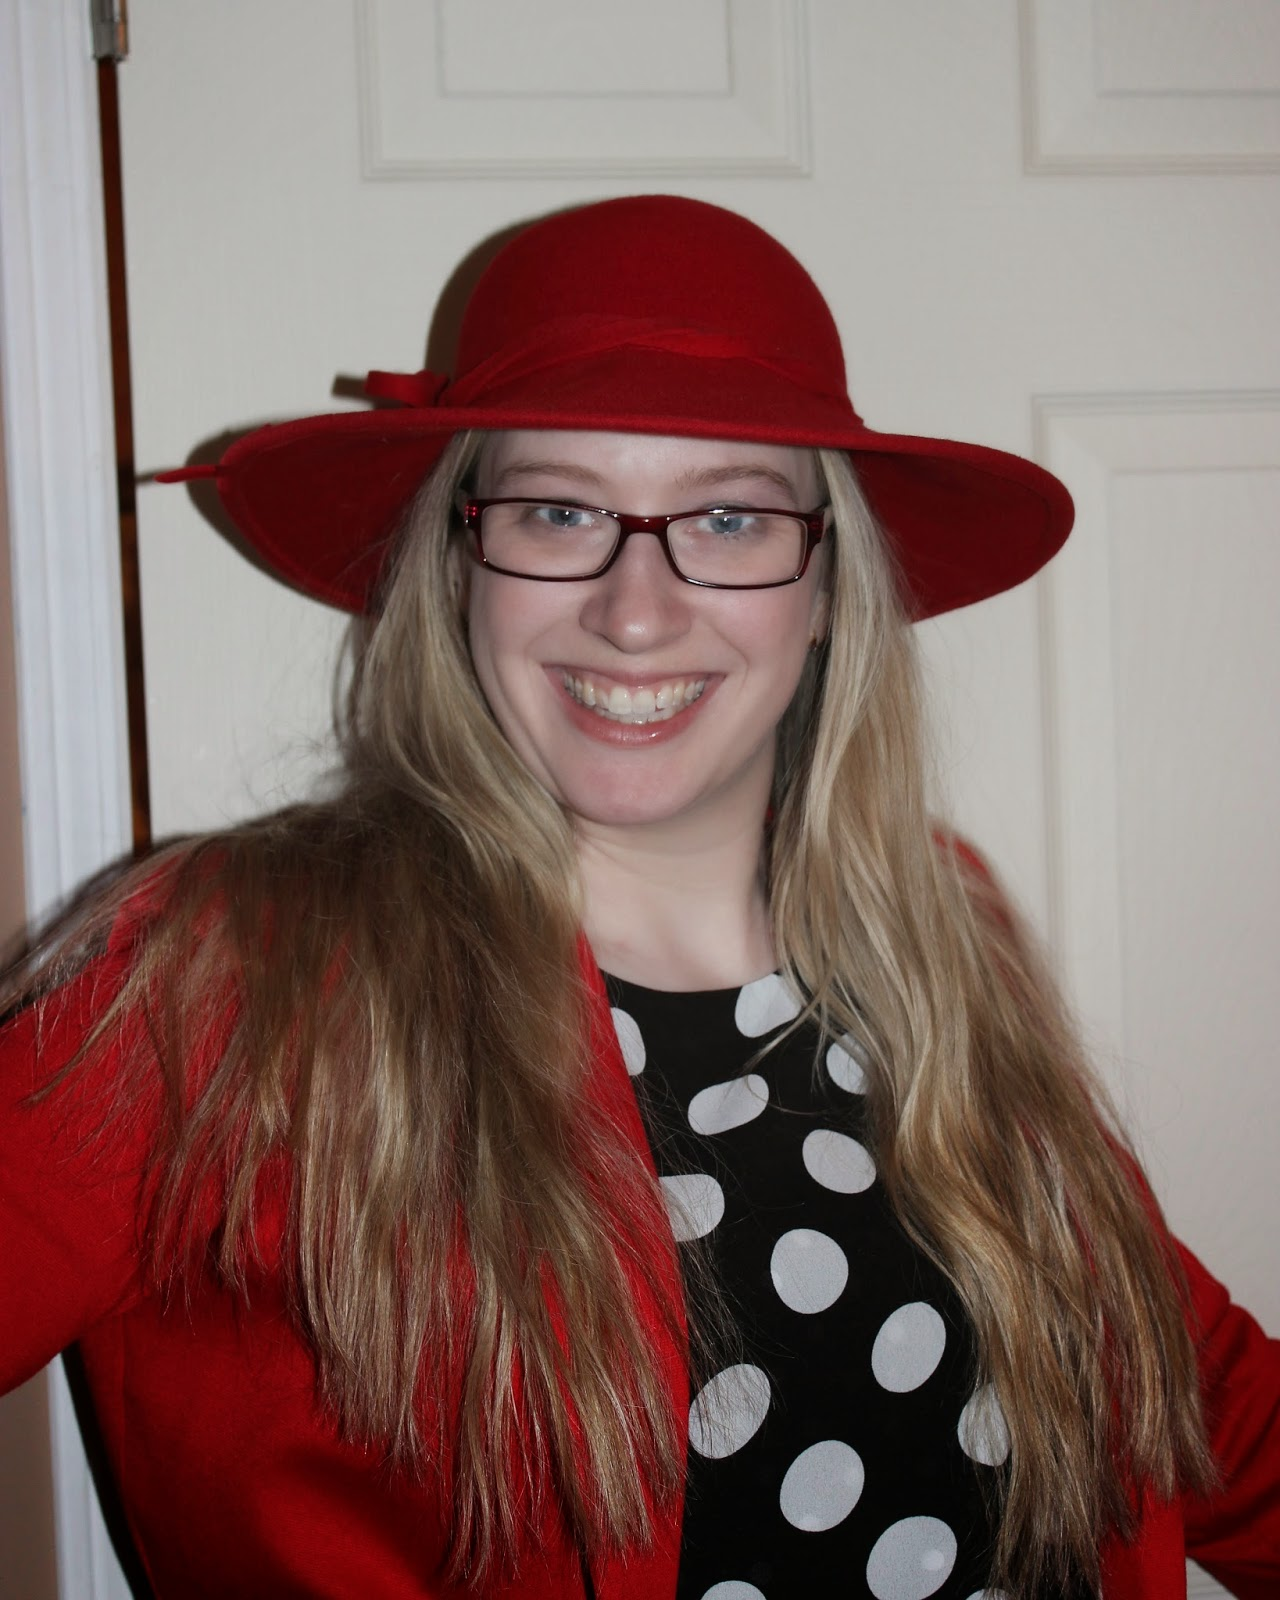 red hat, wide brim hat, felt hat, wool hat, blond woman in hat